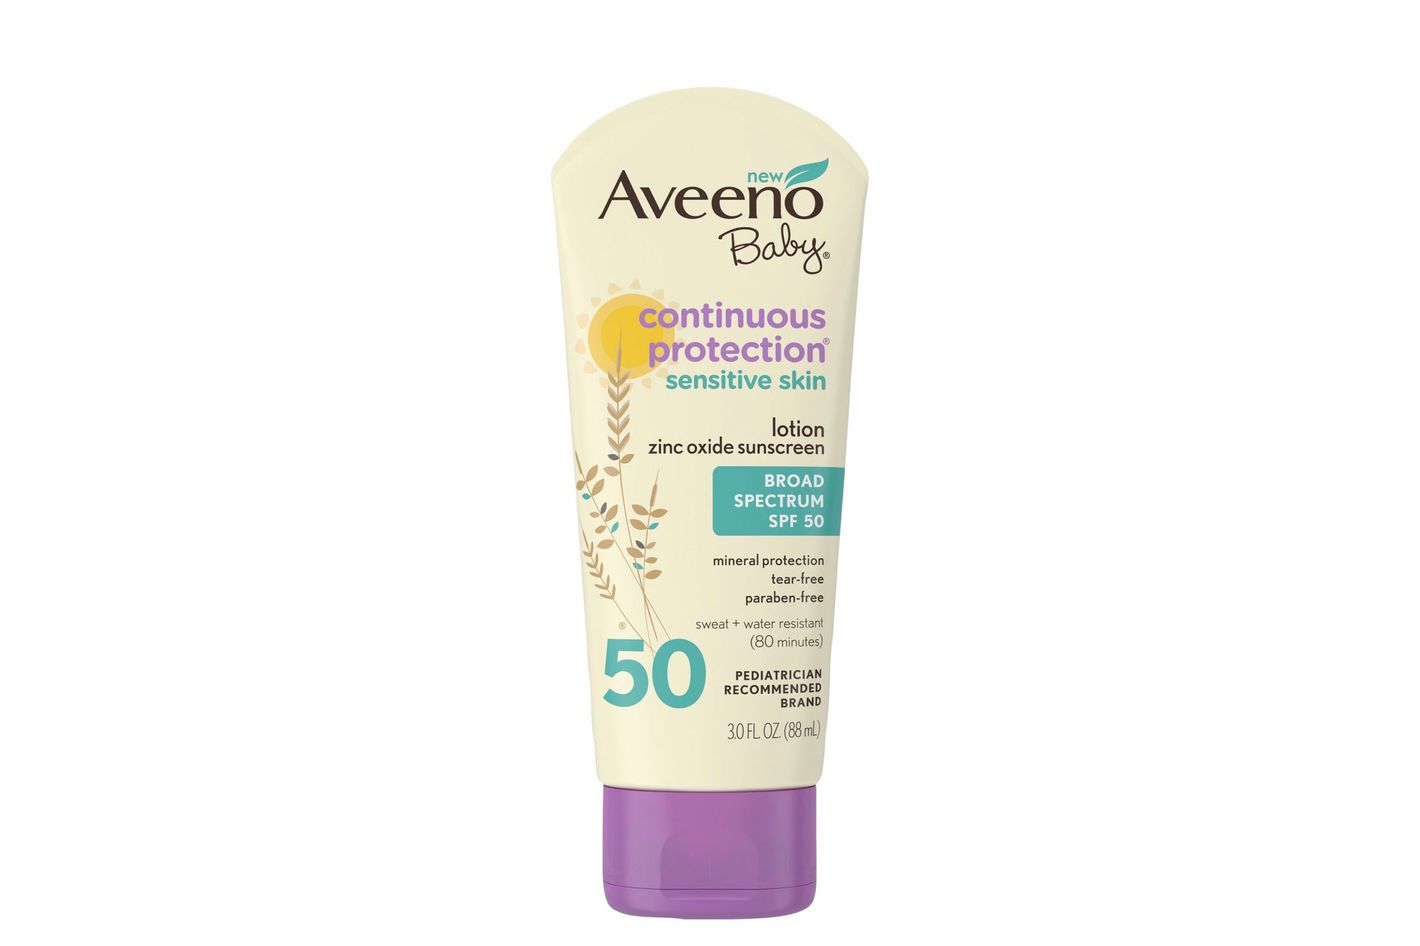 Aveeno Baby Continuous Protection Sensitive Skin Broad Spectrum SPF 50